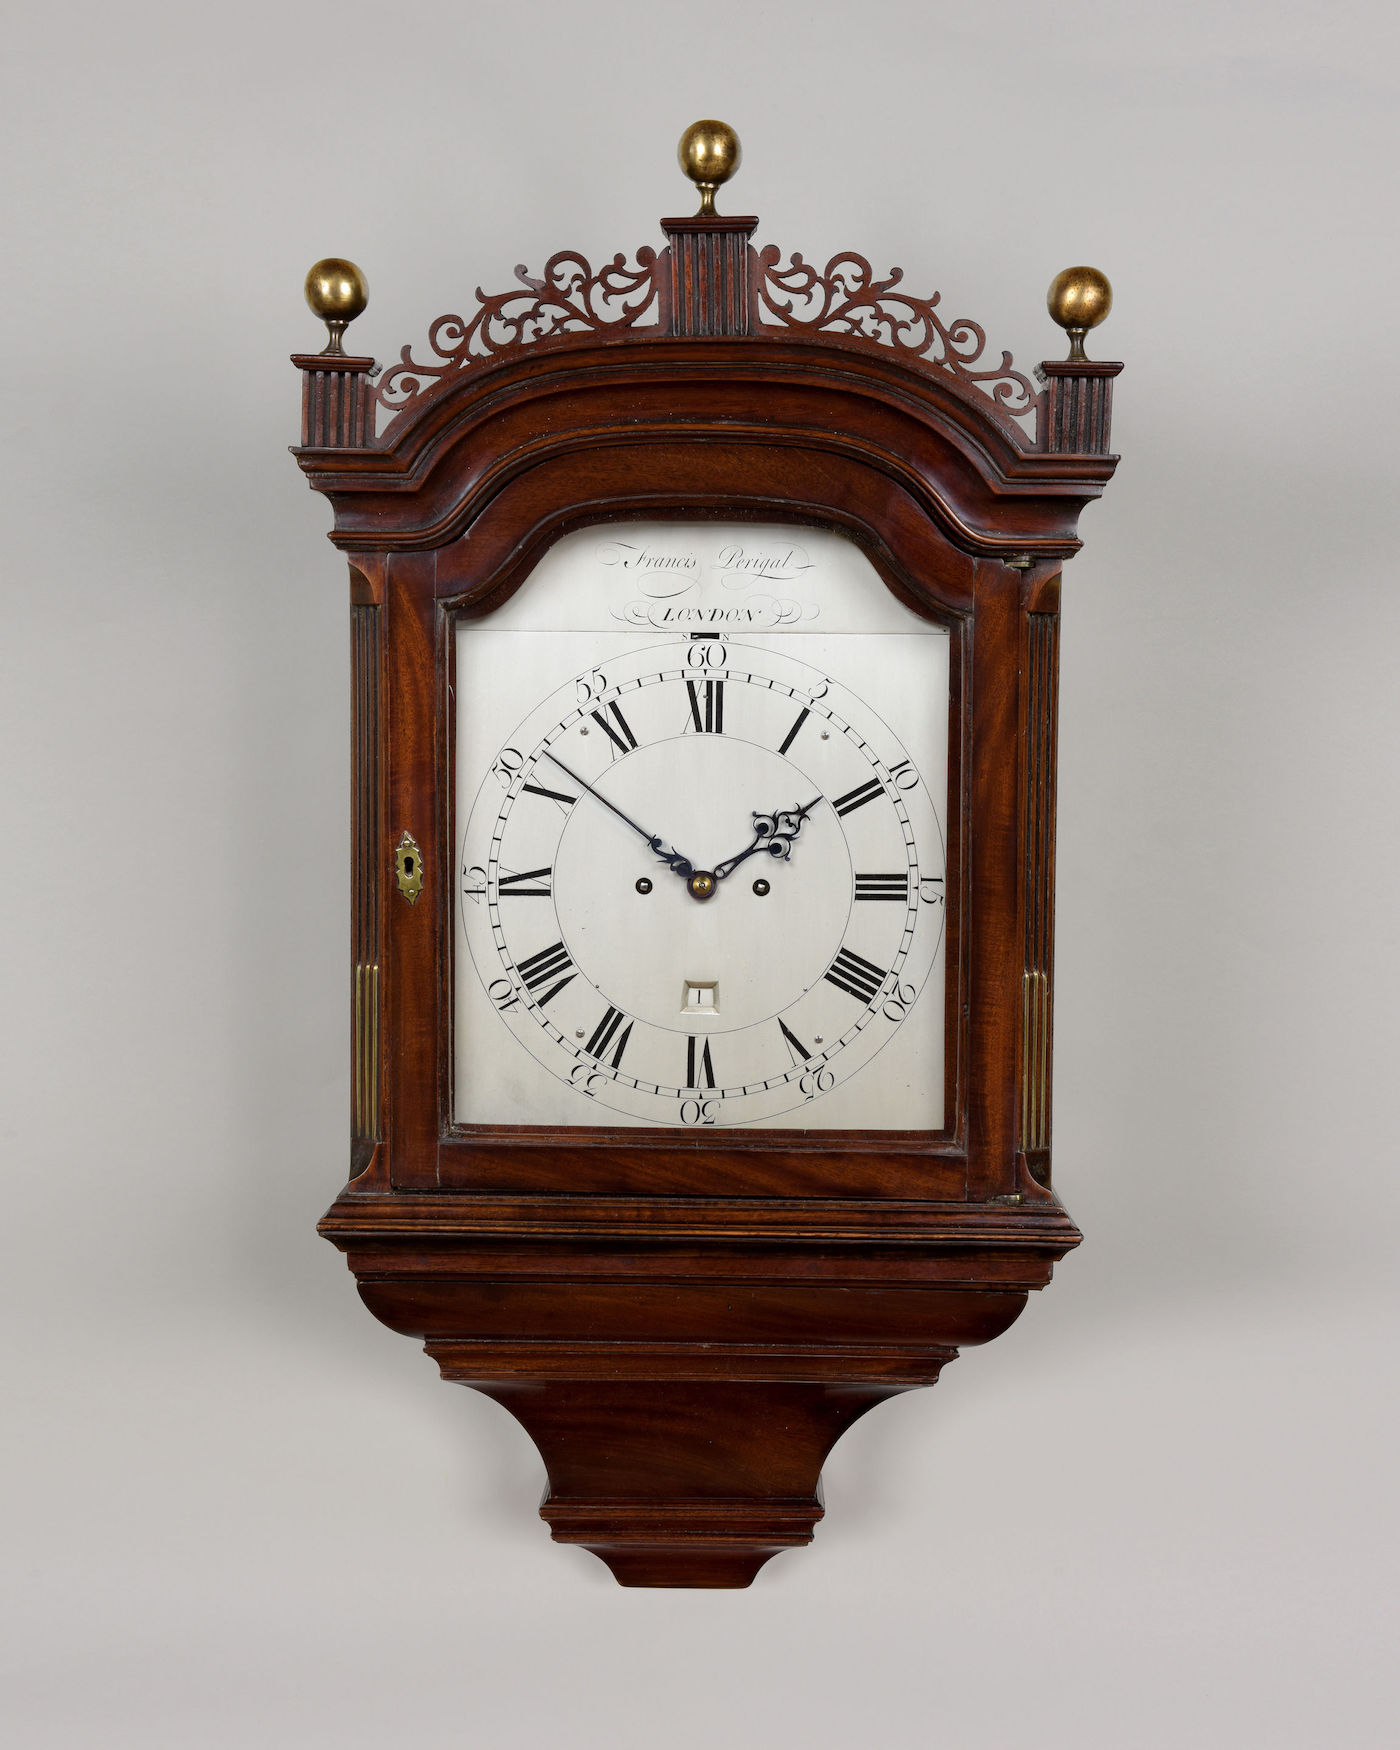 FRANCIS PERIGAL. A FINE GEORGE III PERIOD HOODED WALL CLOCK BY THIS EMINENT MAKER.